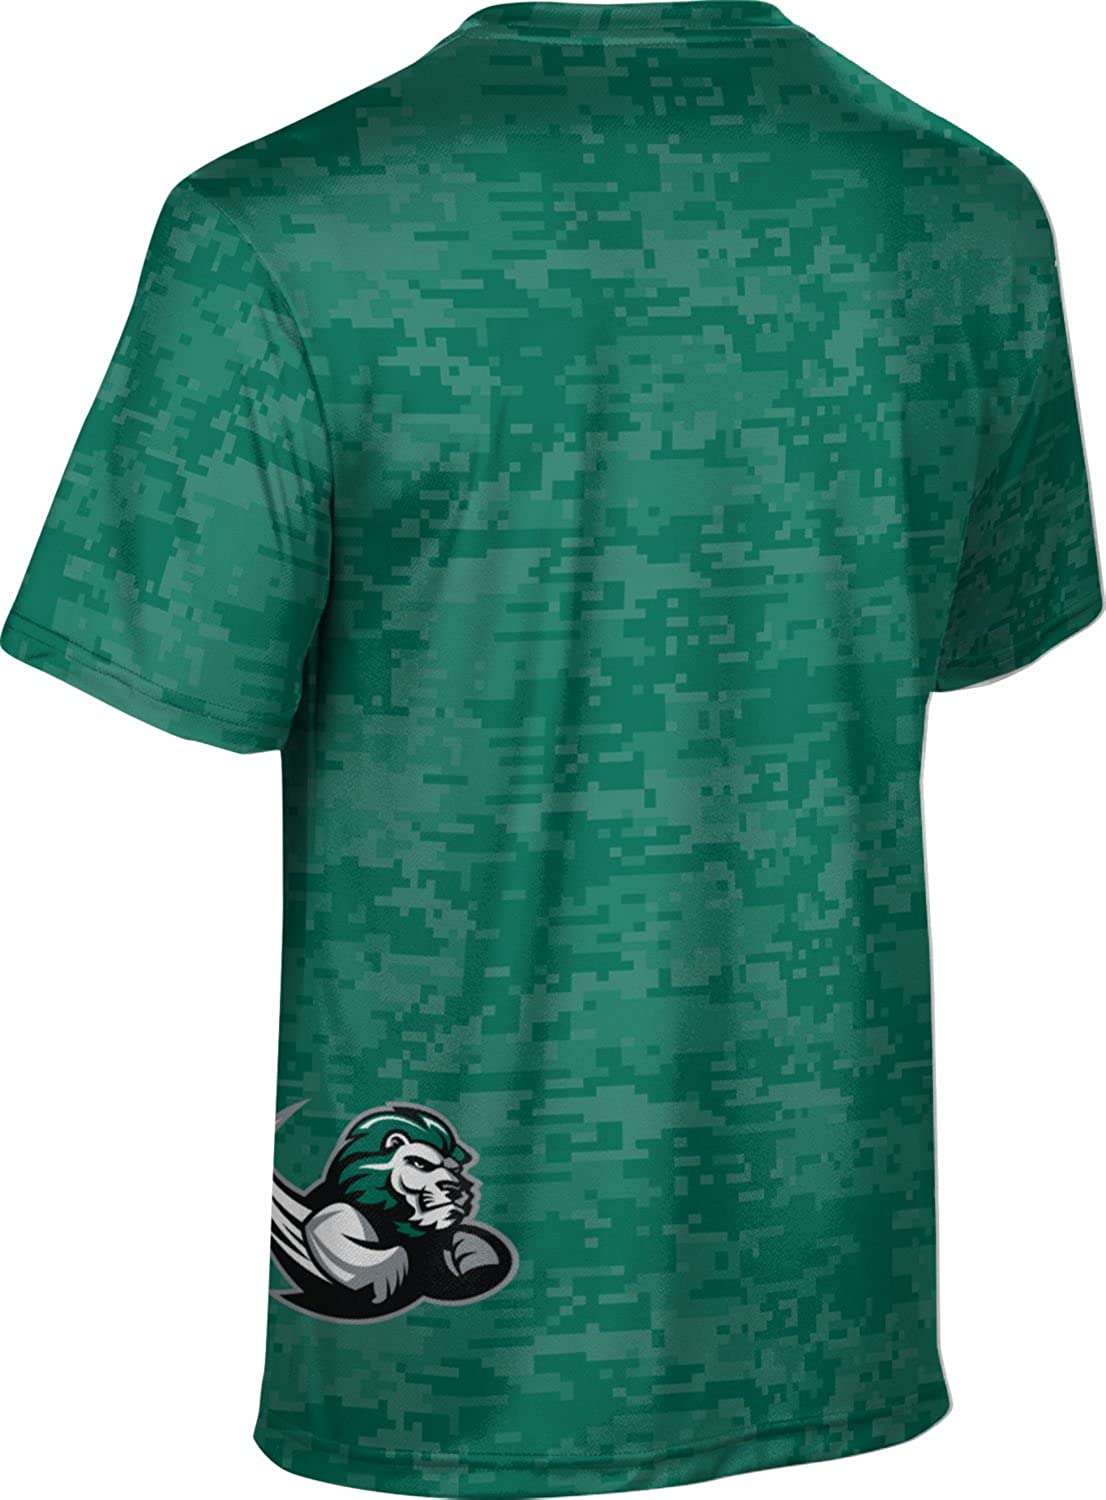 Digi Camo ProSphere Slippery Rock University Boys Performance T-Shirt